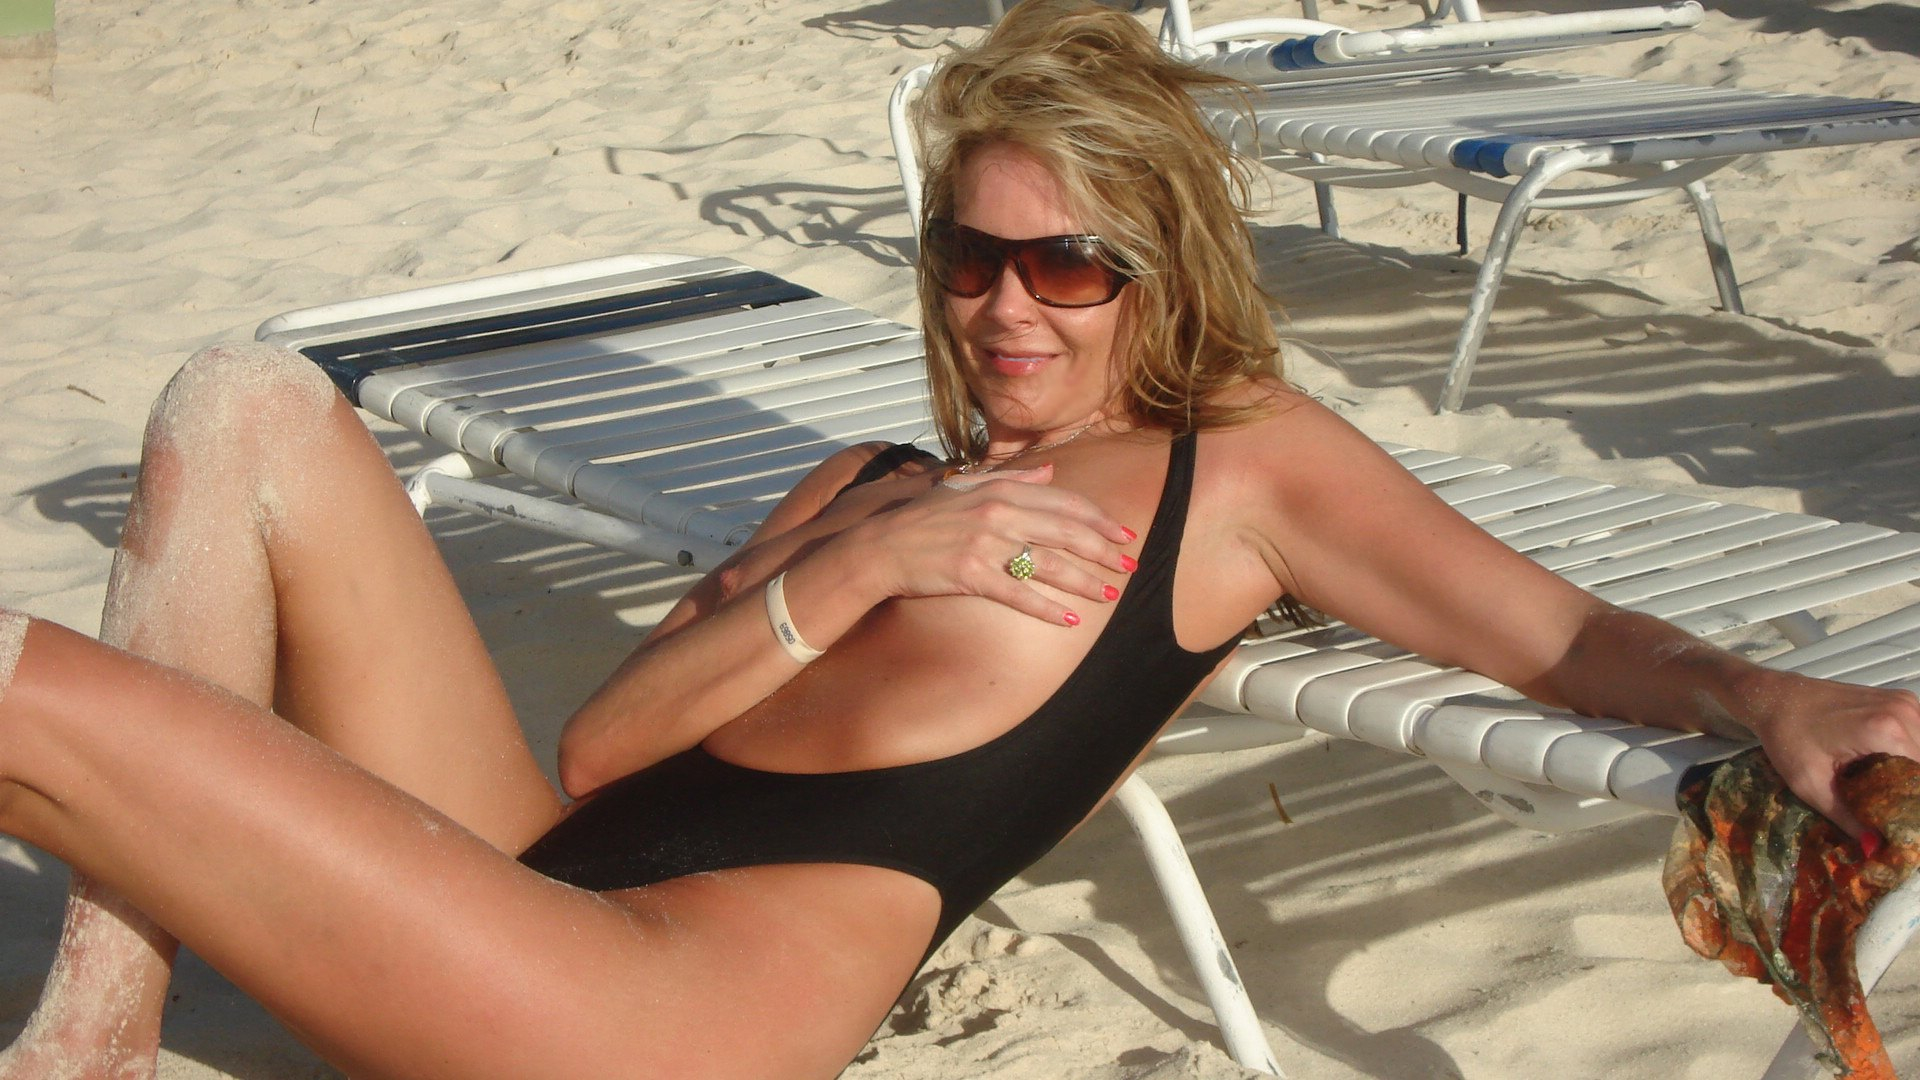 Milf mature woman bathing suit